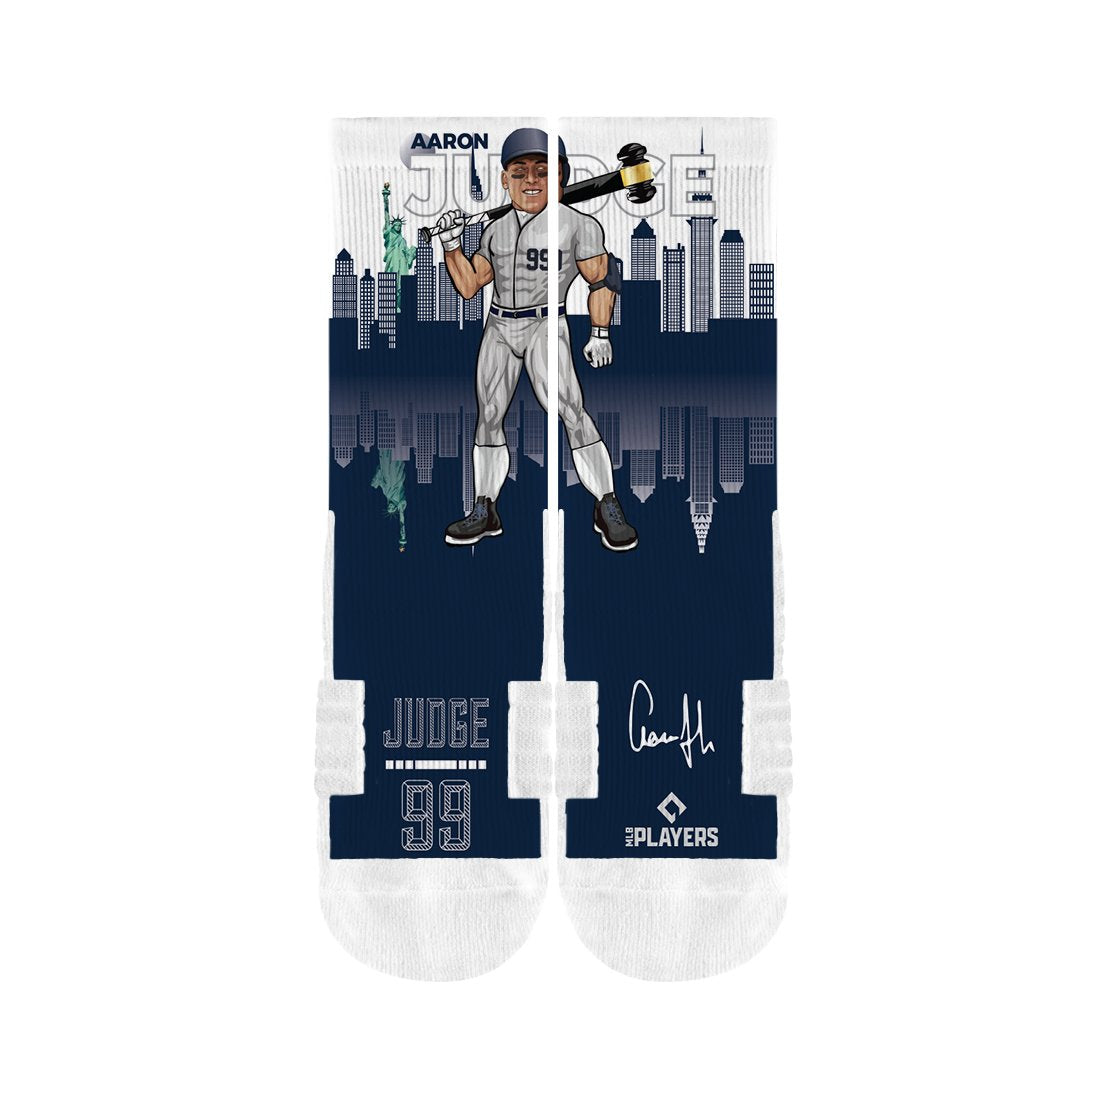 Aaron Judge | Premium Full Sub | Superhero | N01398376ML